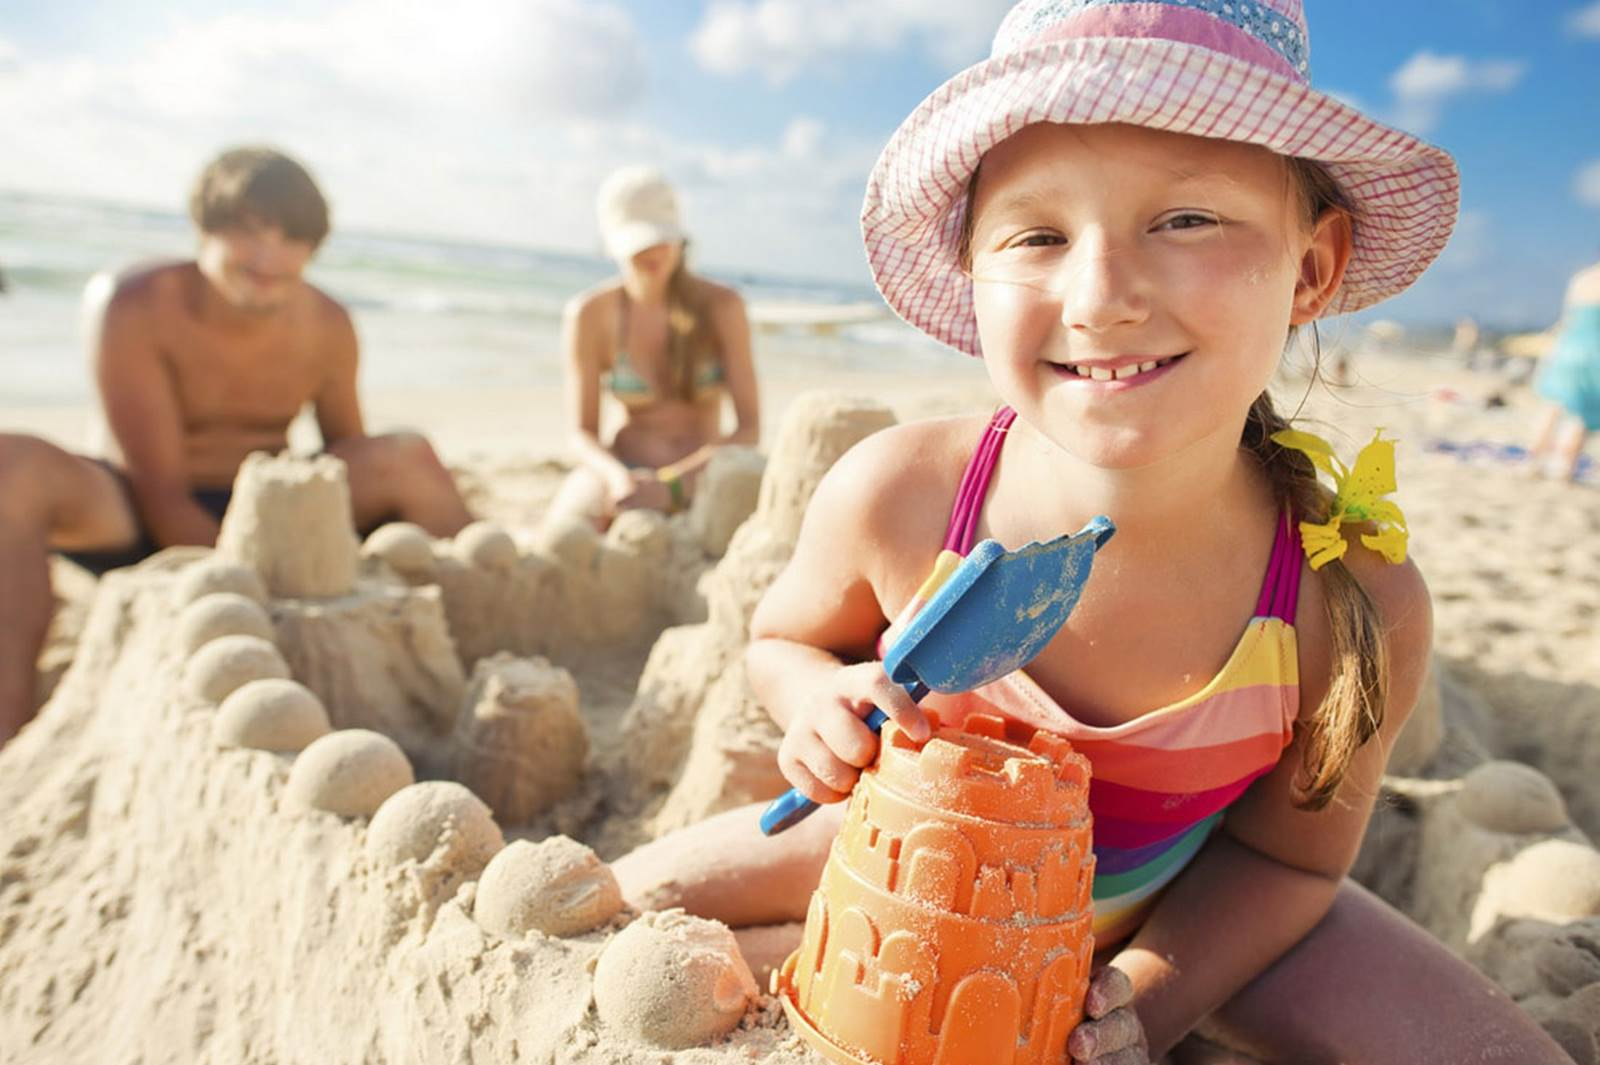 635728667537743721-532730049_a-child-building-a-sand-castle